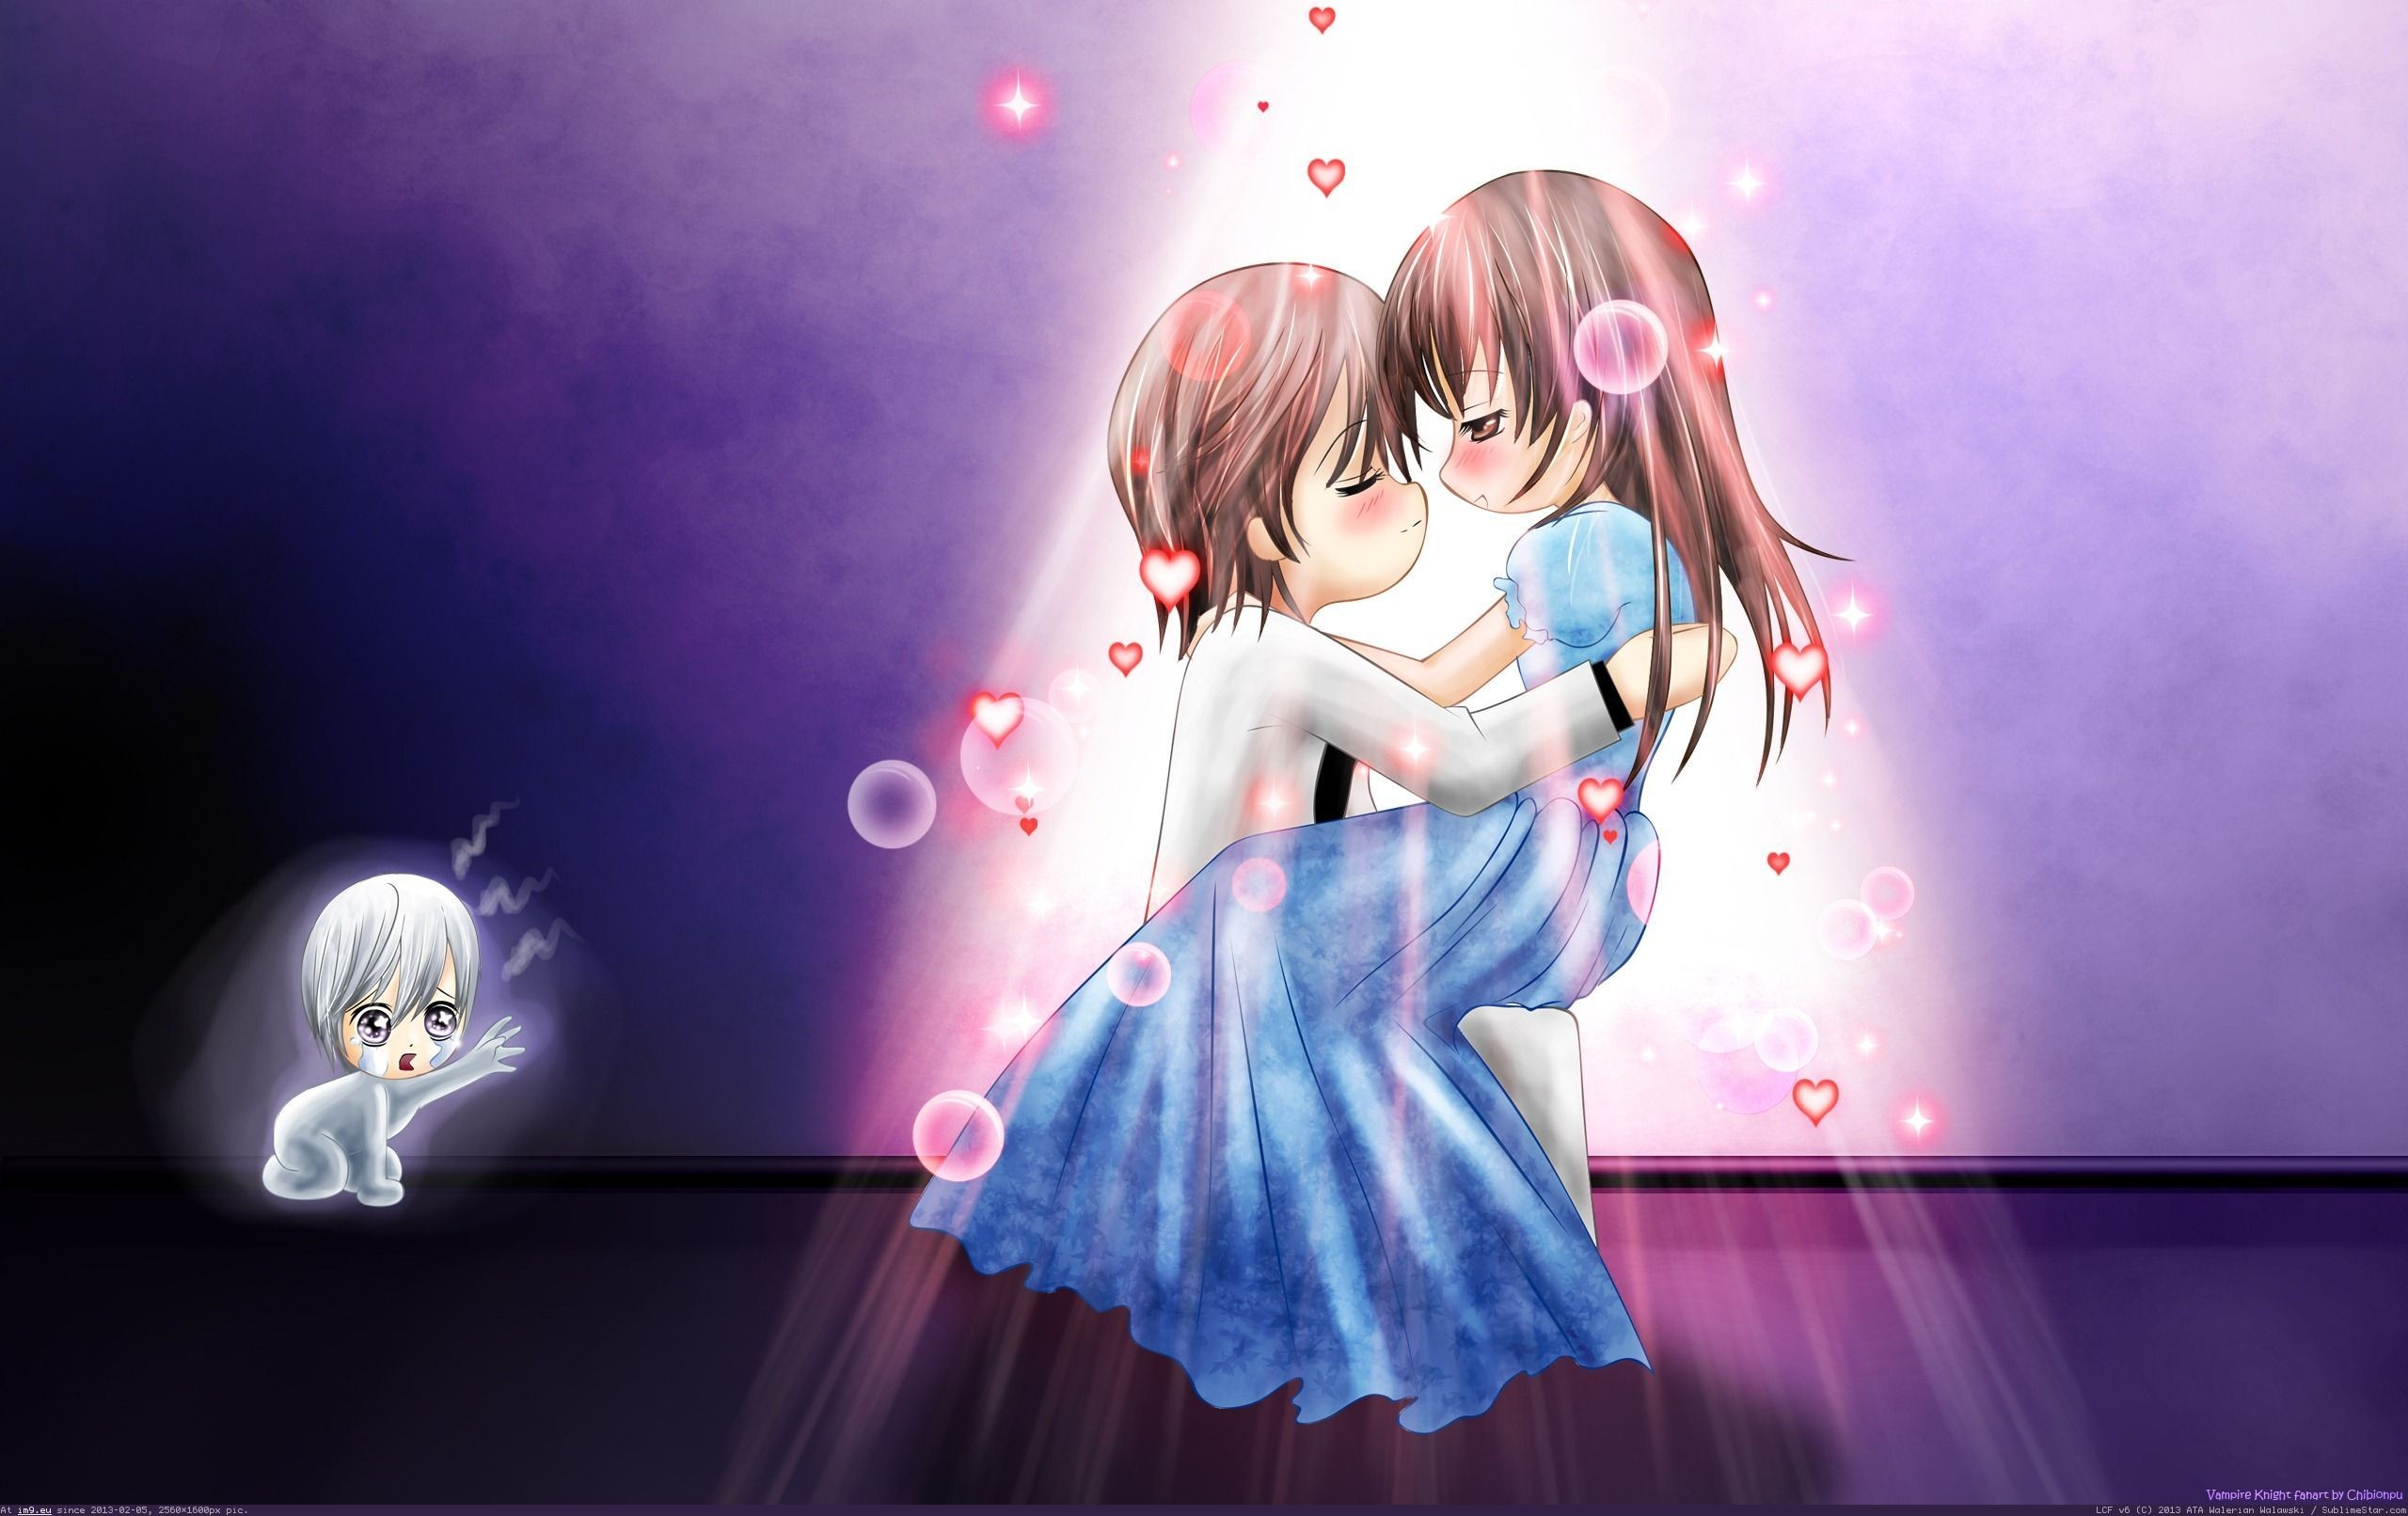 Res: 2560x1612, Anime Couple Wallpaper Hd Full Animated Cartoon Desktop High Quality Of Pc  Miscellaneous